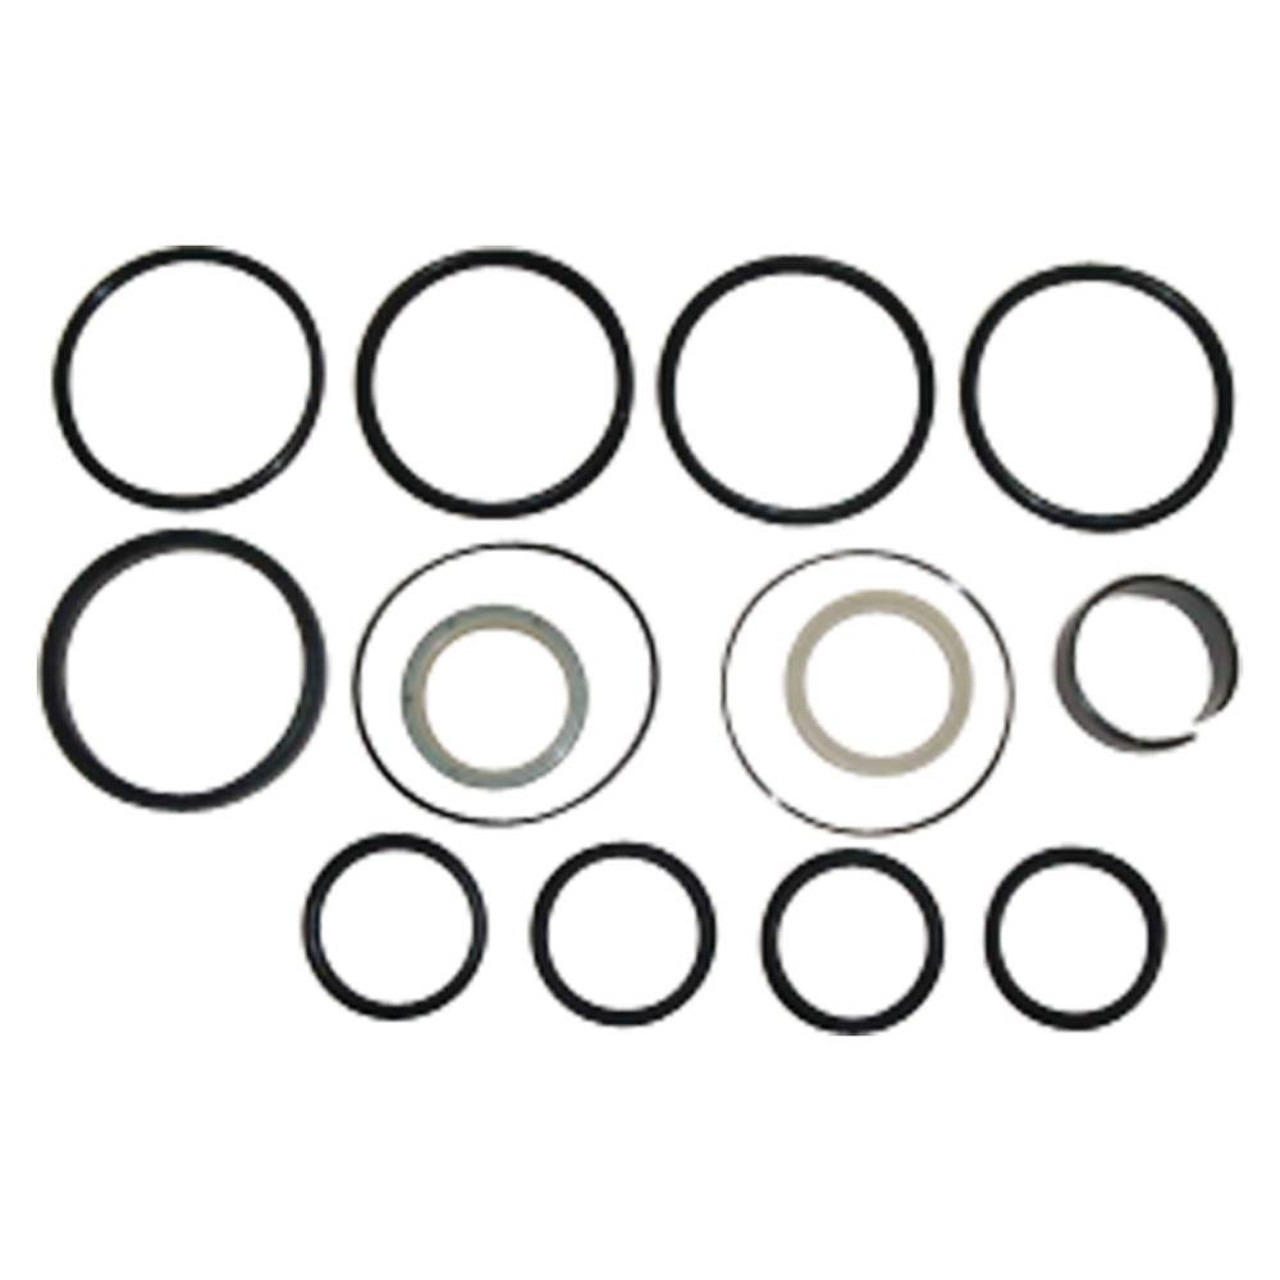 NEW Hydraulic Cylinder Seal Kit for Ford New Holland Tr